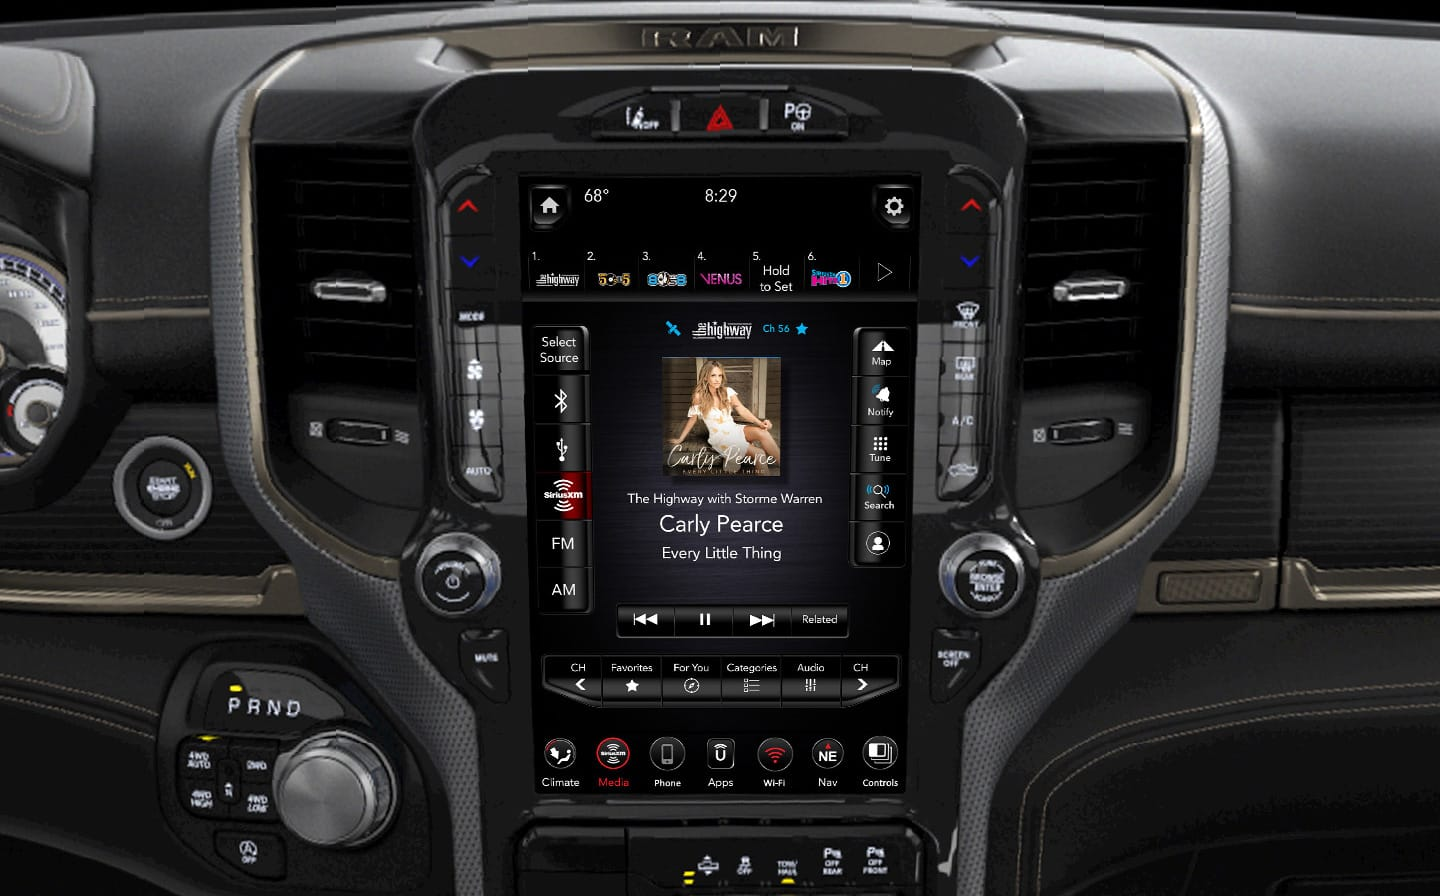 Groovy All New 2019 Ram 1500 Interior Photos And Features Gallery Dailytribune Chair Design For Home Dailytribuneorg